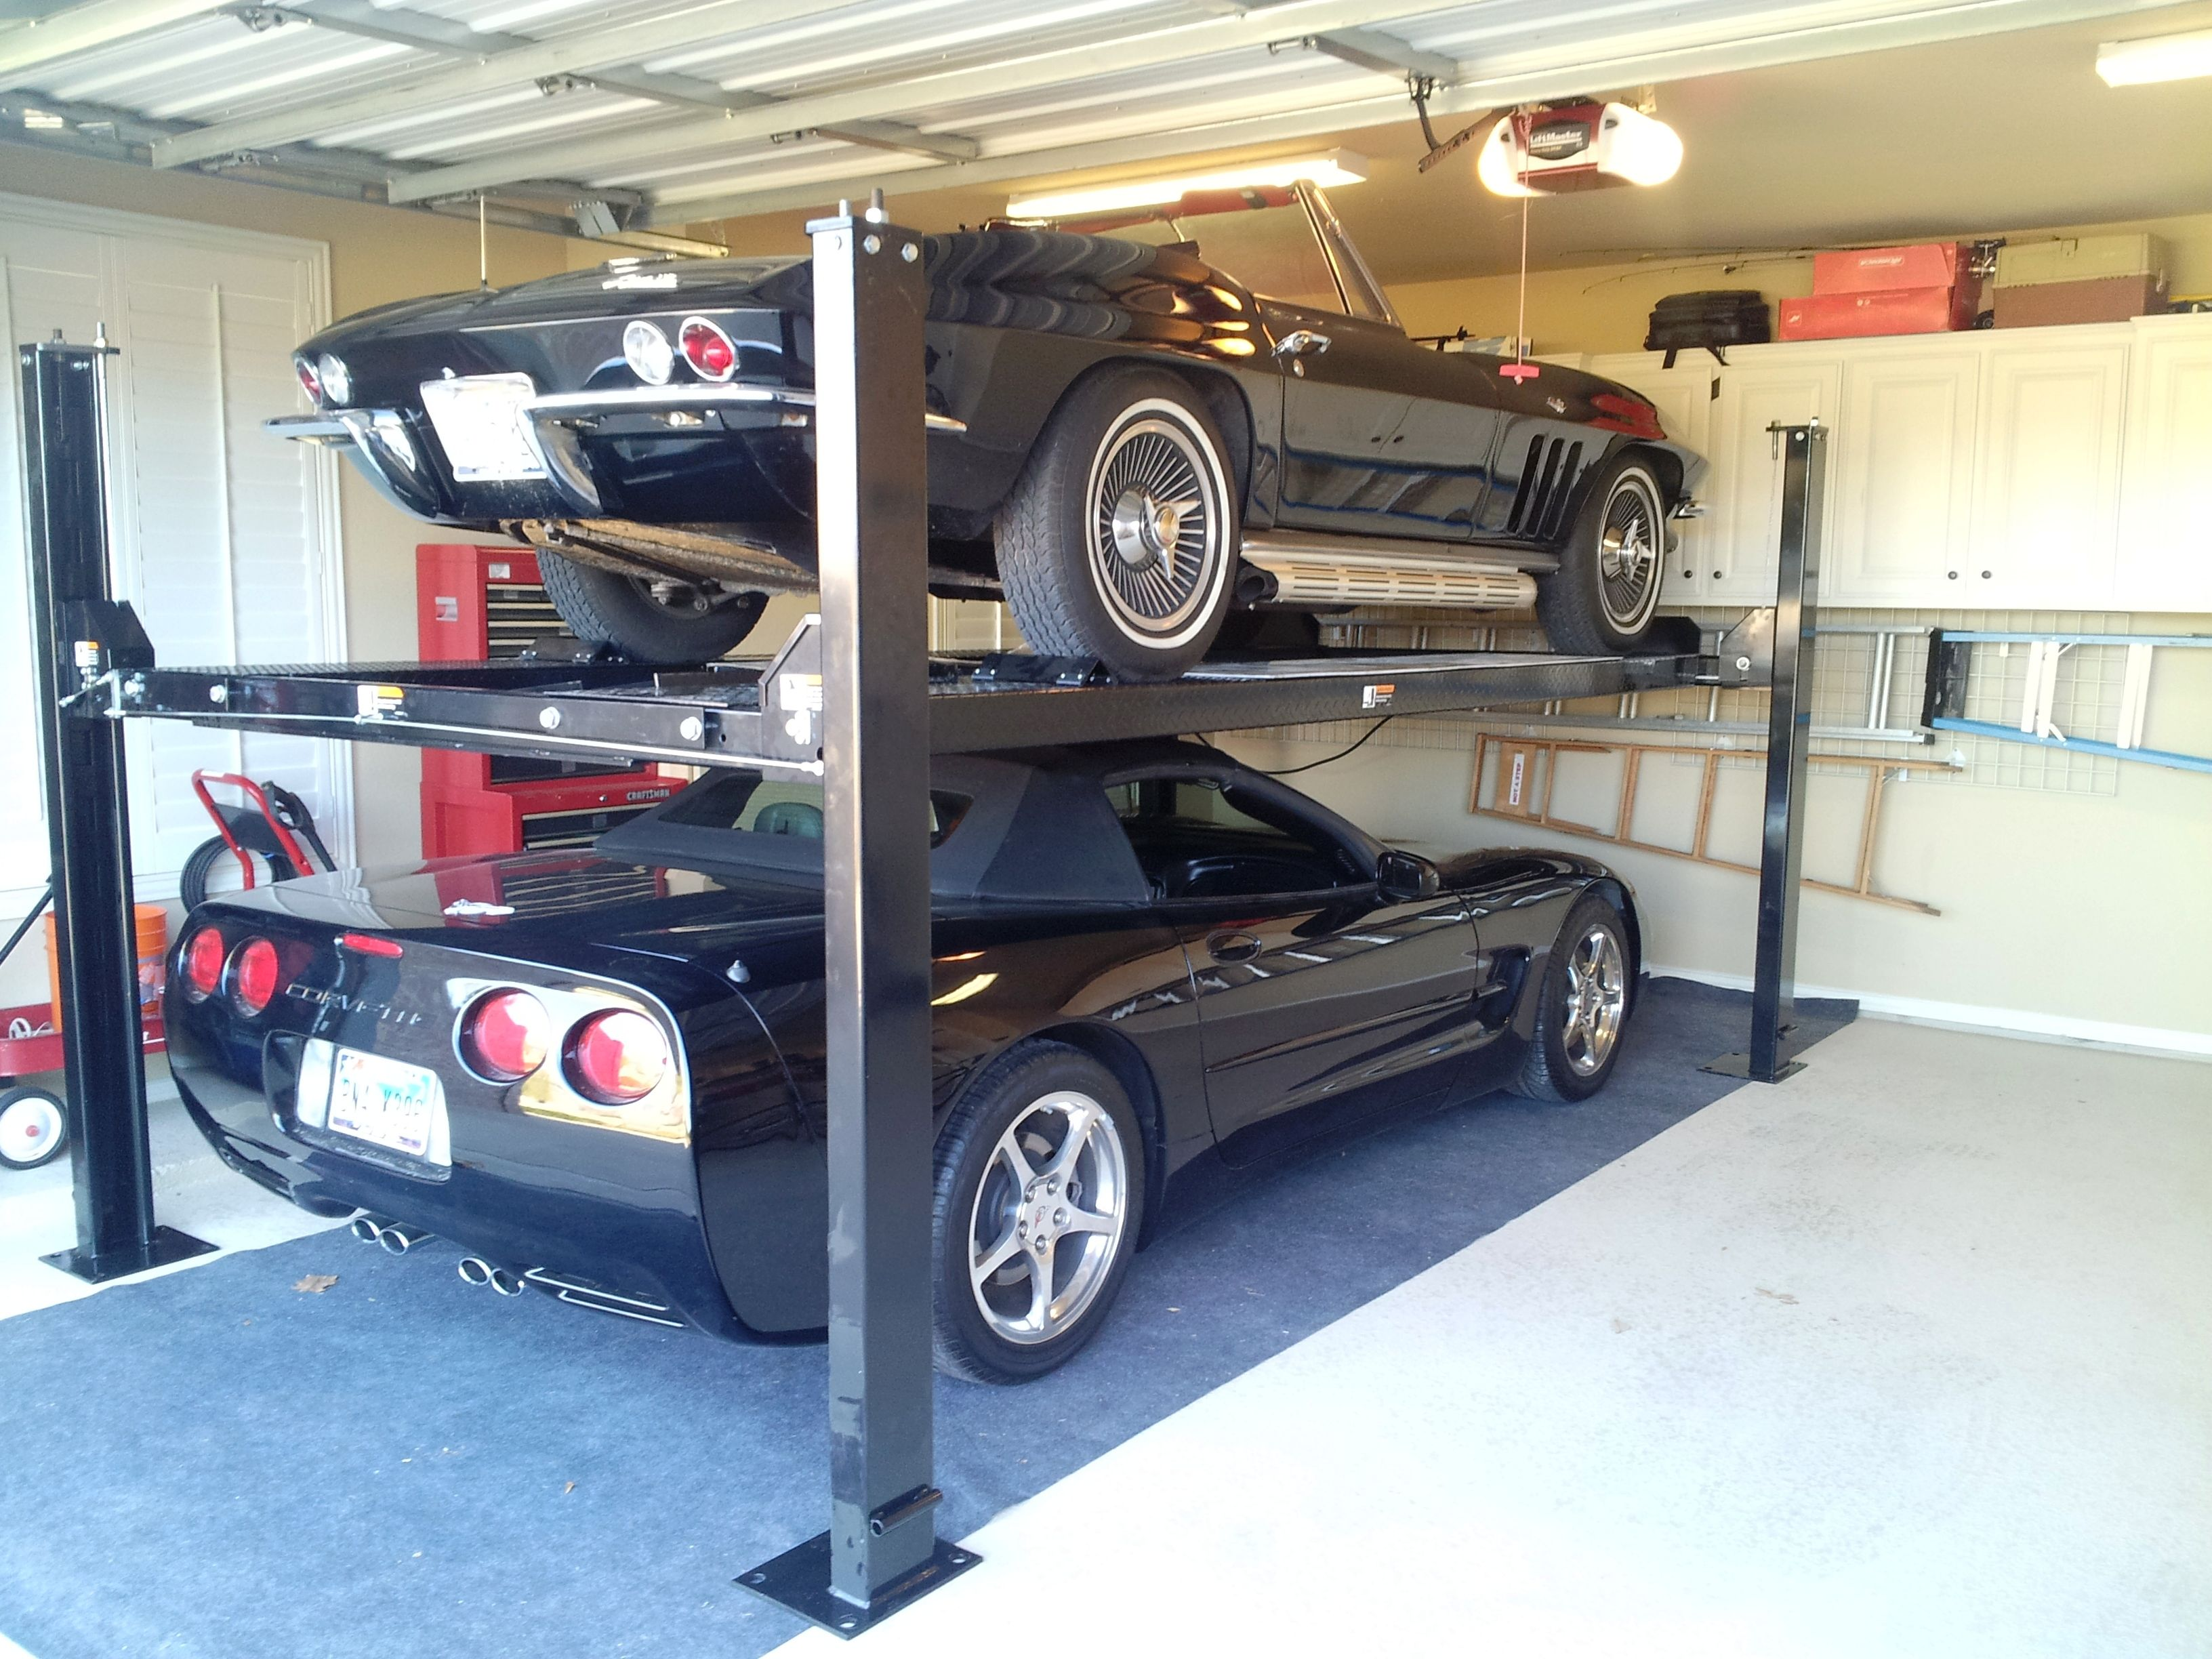 A Car Lift Is An Important Piece Of Equipment That Has To Be Safe Reliable And Above All Strong Enough For Your Needs With The Choices Available